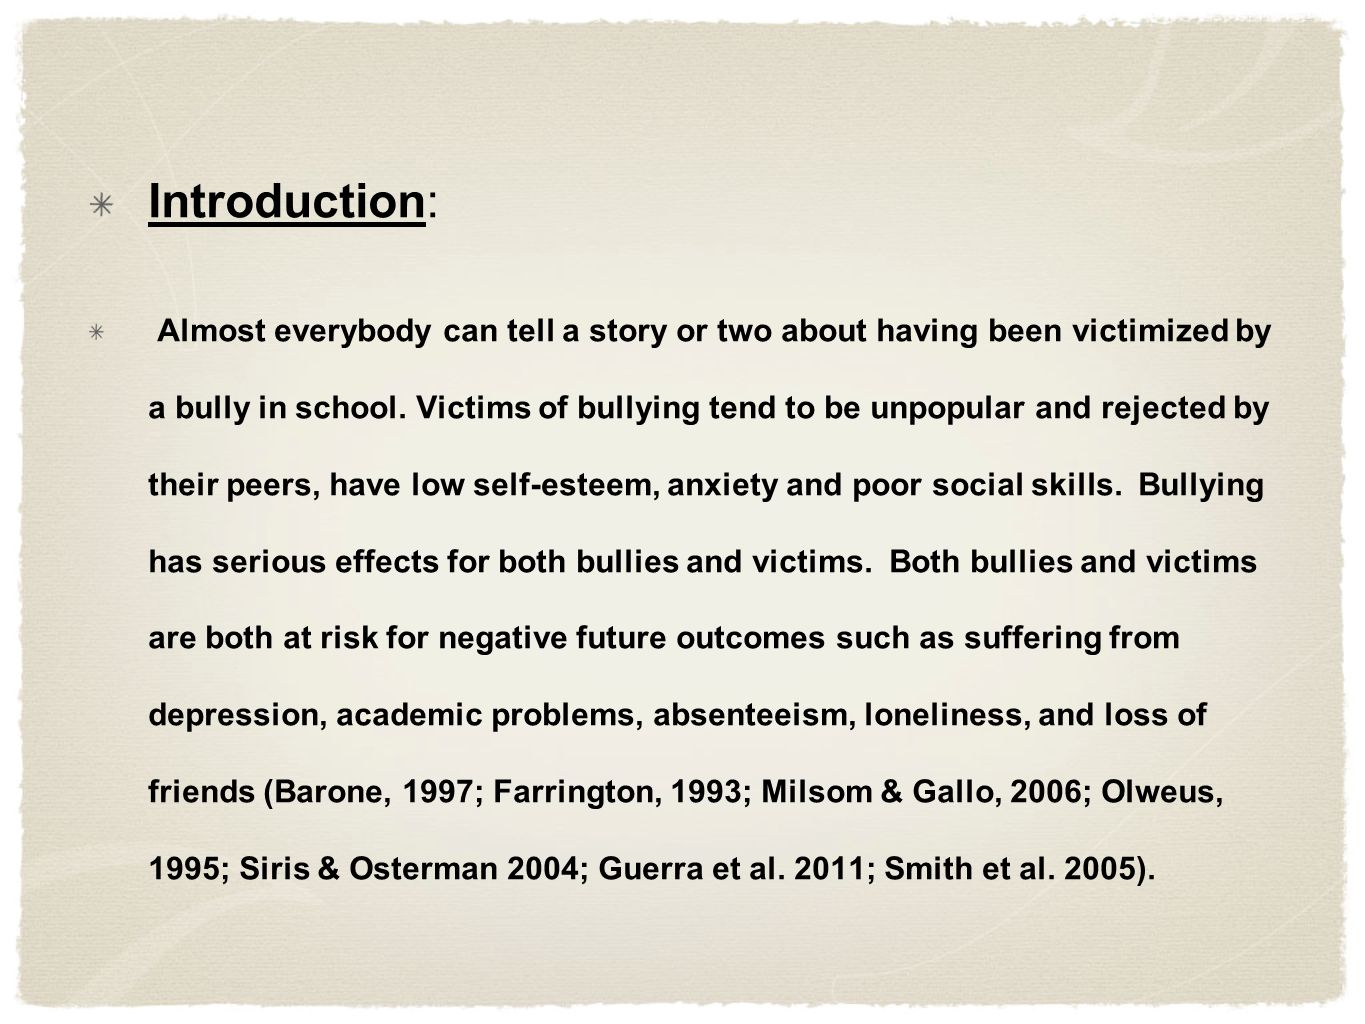 Introduction: Almost everybody can tell a story or two about having been victimized by a bully in school.